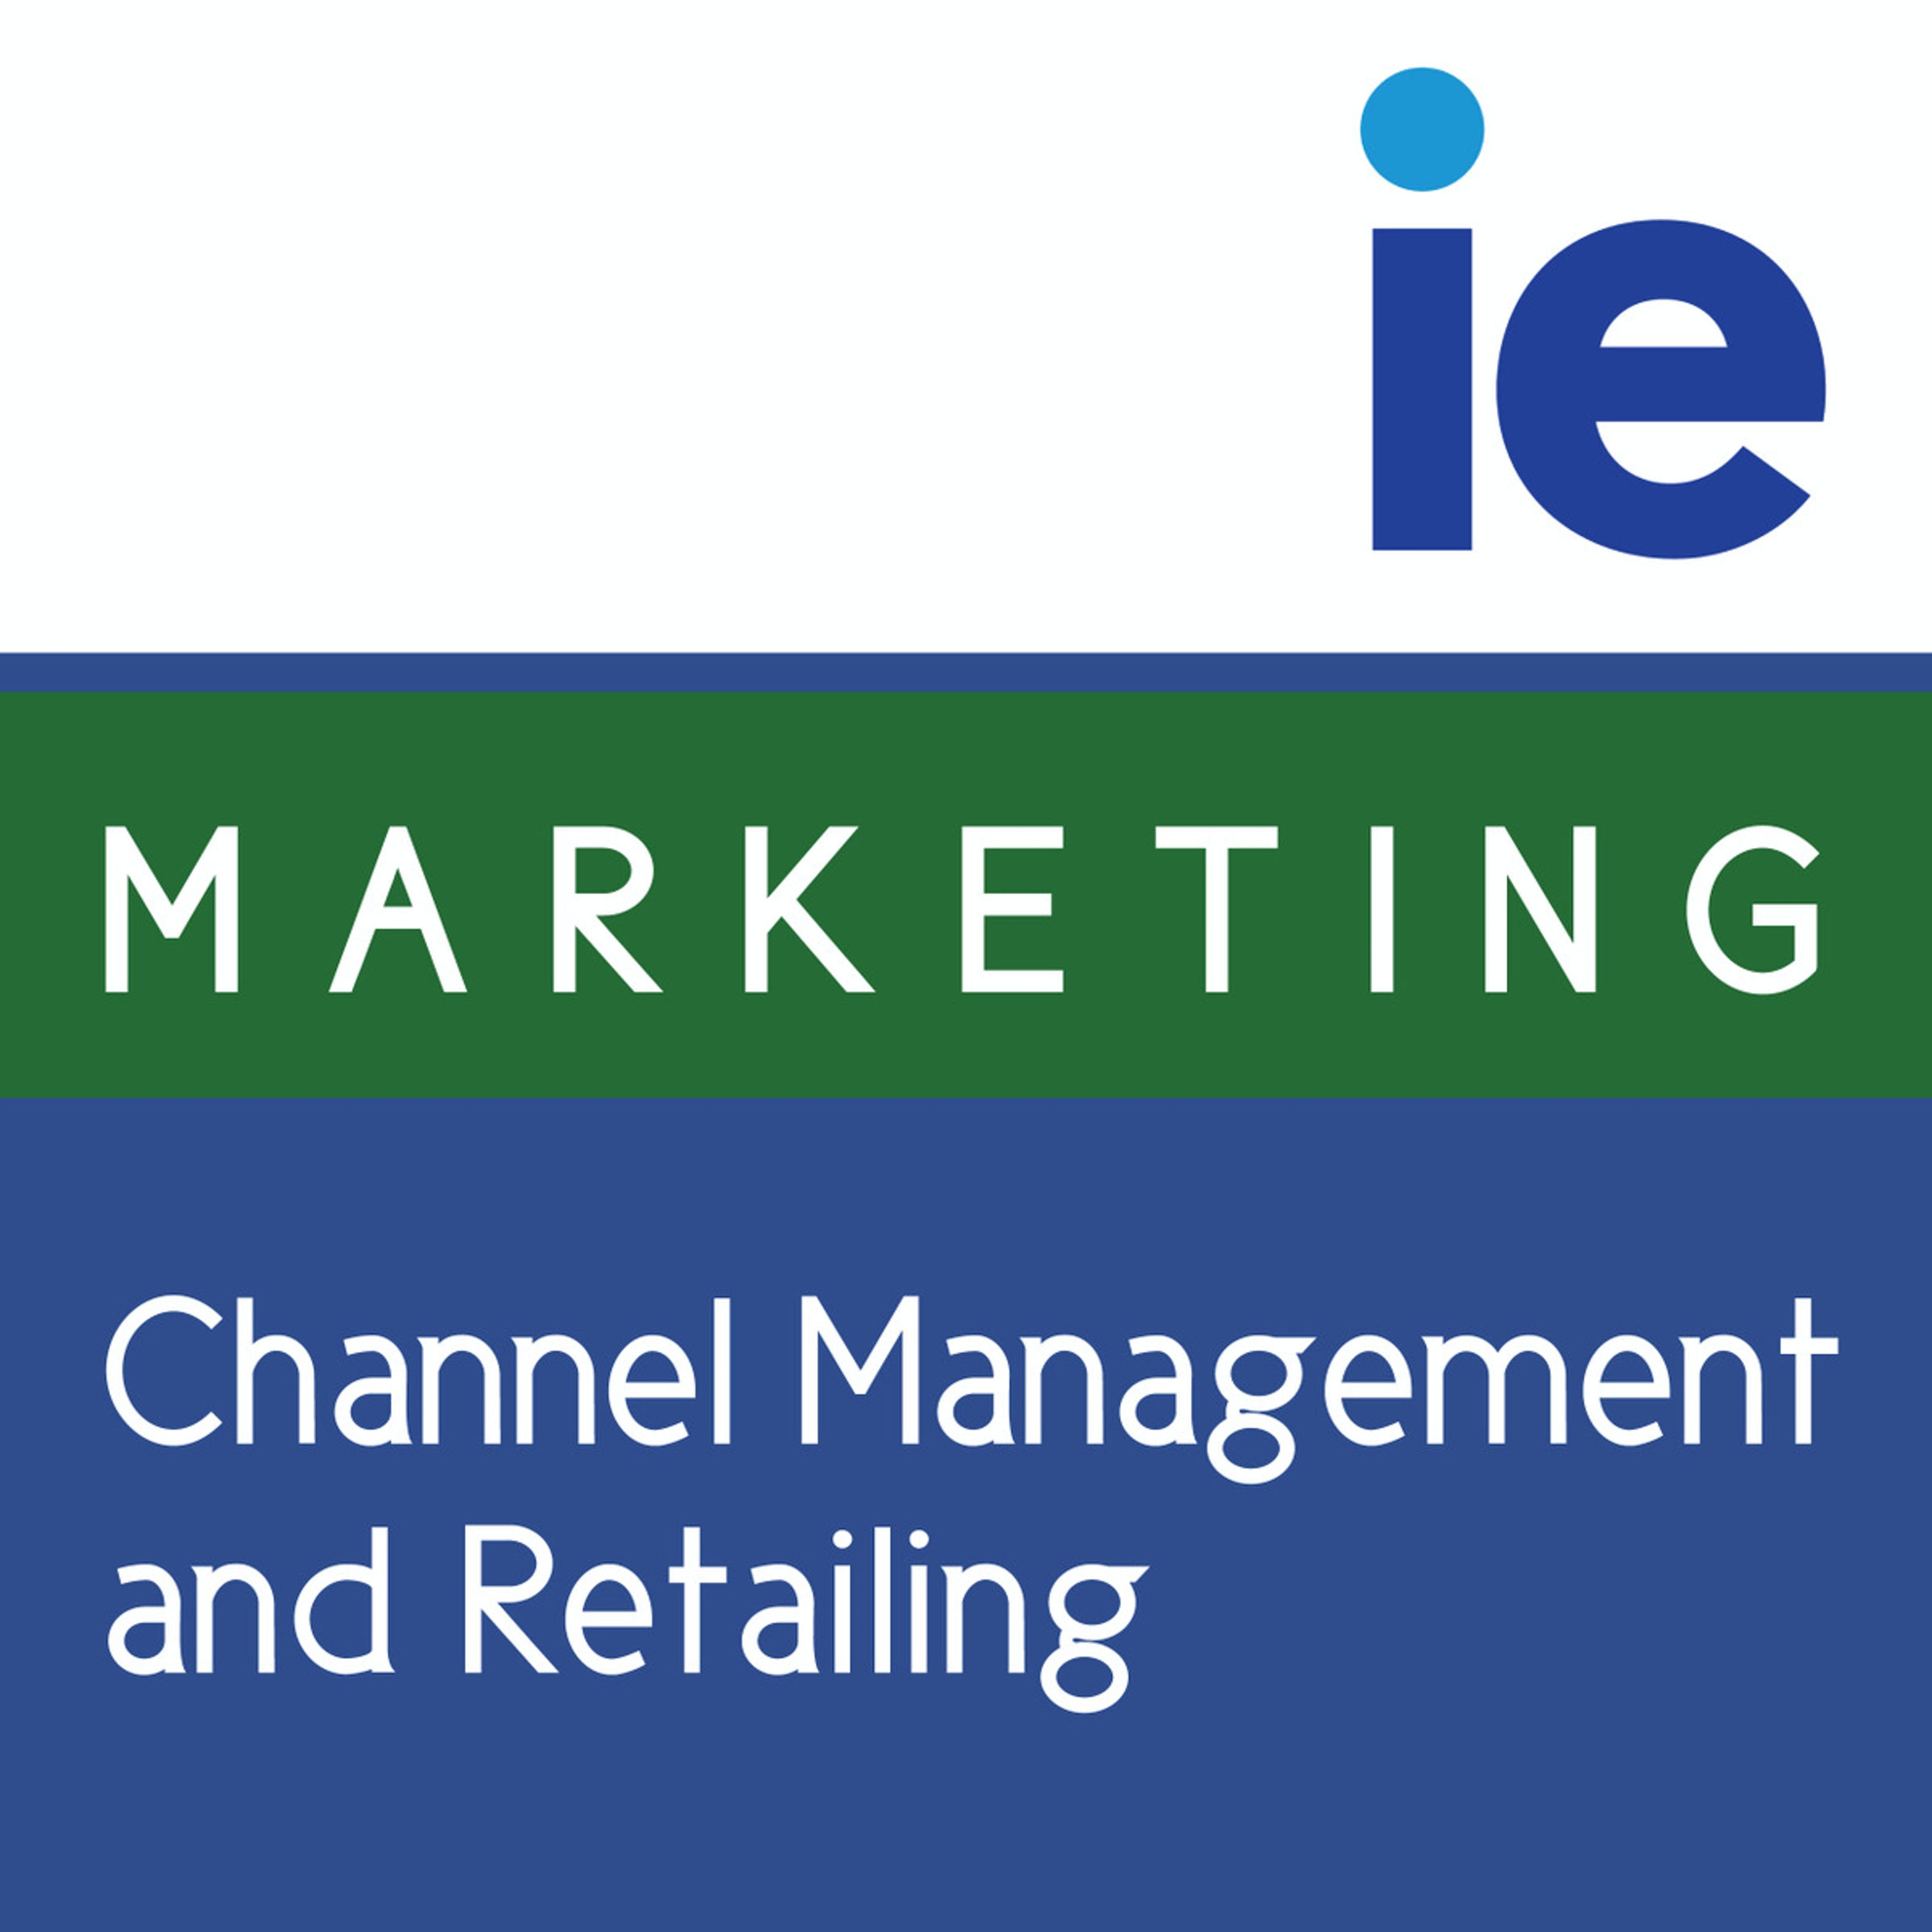 Channel Management and Retailing | Coursera